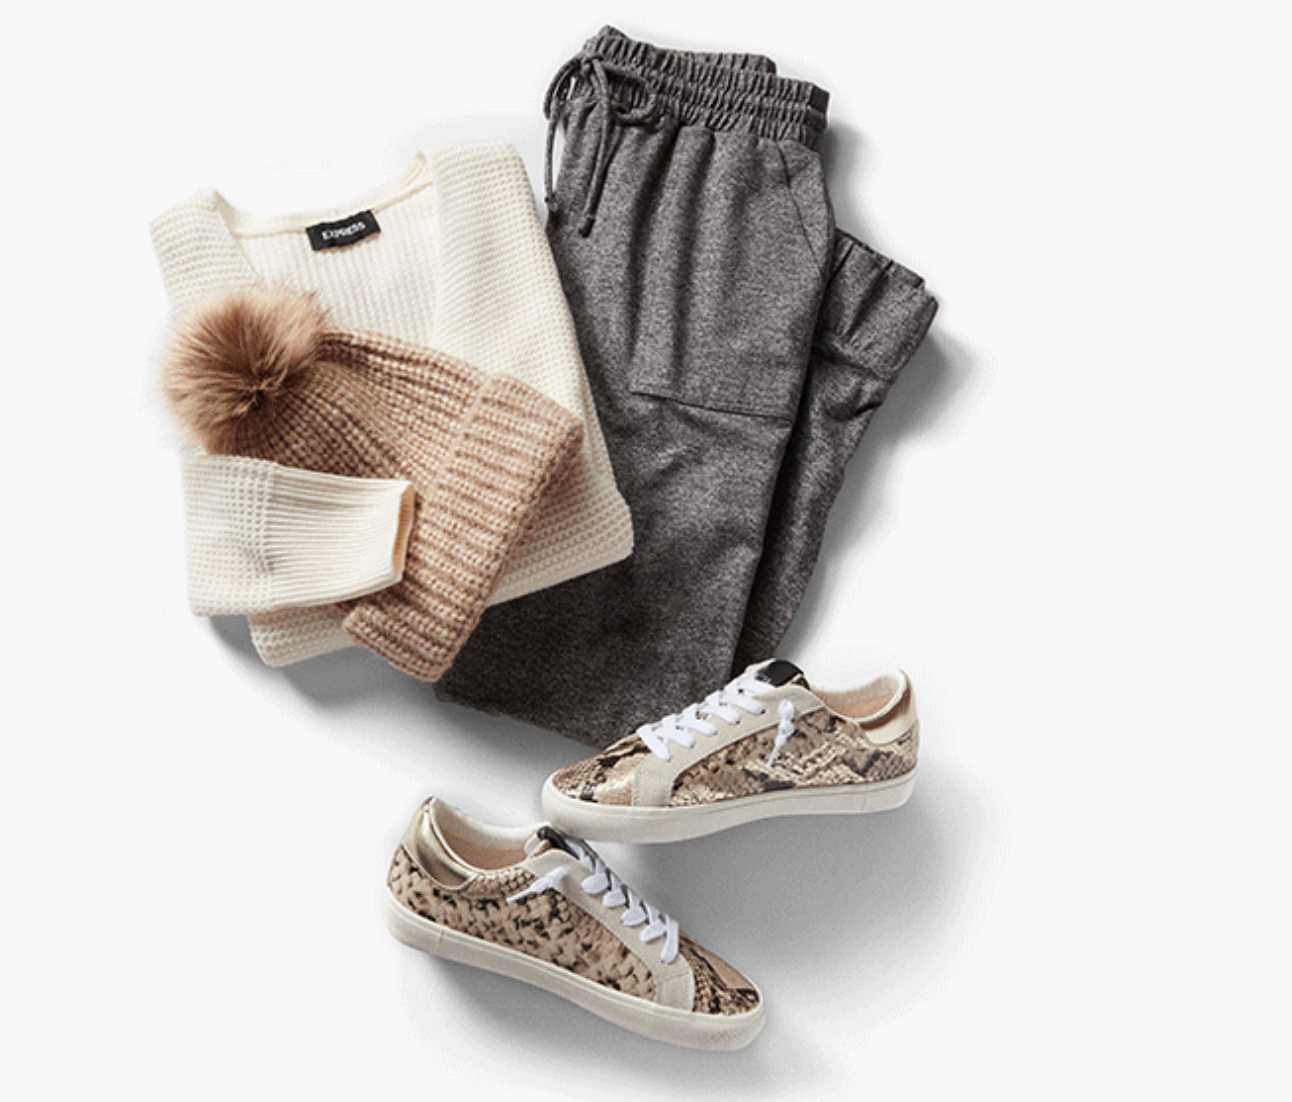 Express: Best Styles From $15